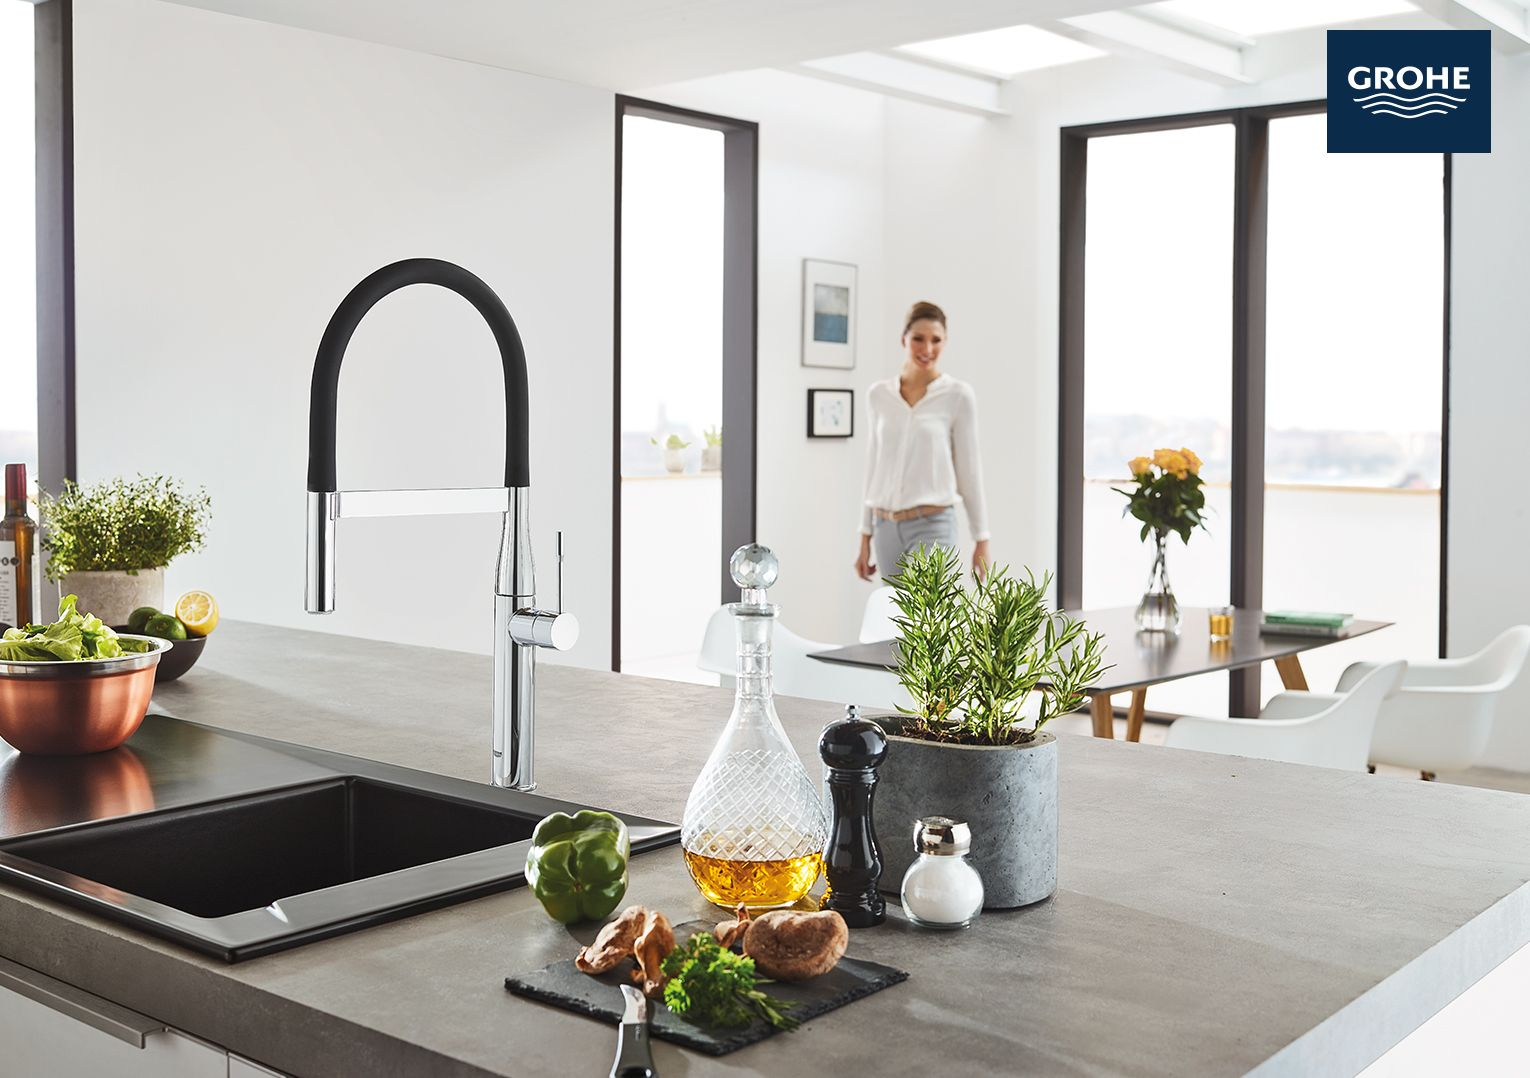 The Grohe Essence Semi Pro Kitchen Faucet Elevates Kitchens With Modern Style That S Crafted For Pure Enjoyment Of Water Kitchen Faucet Grohe Faucet